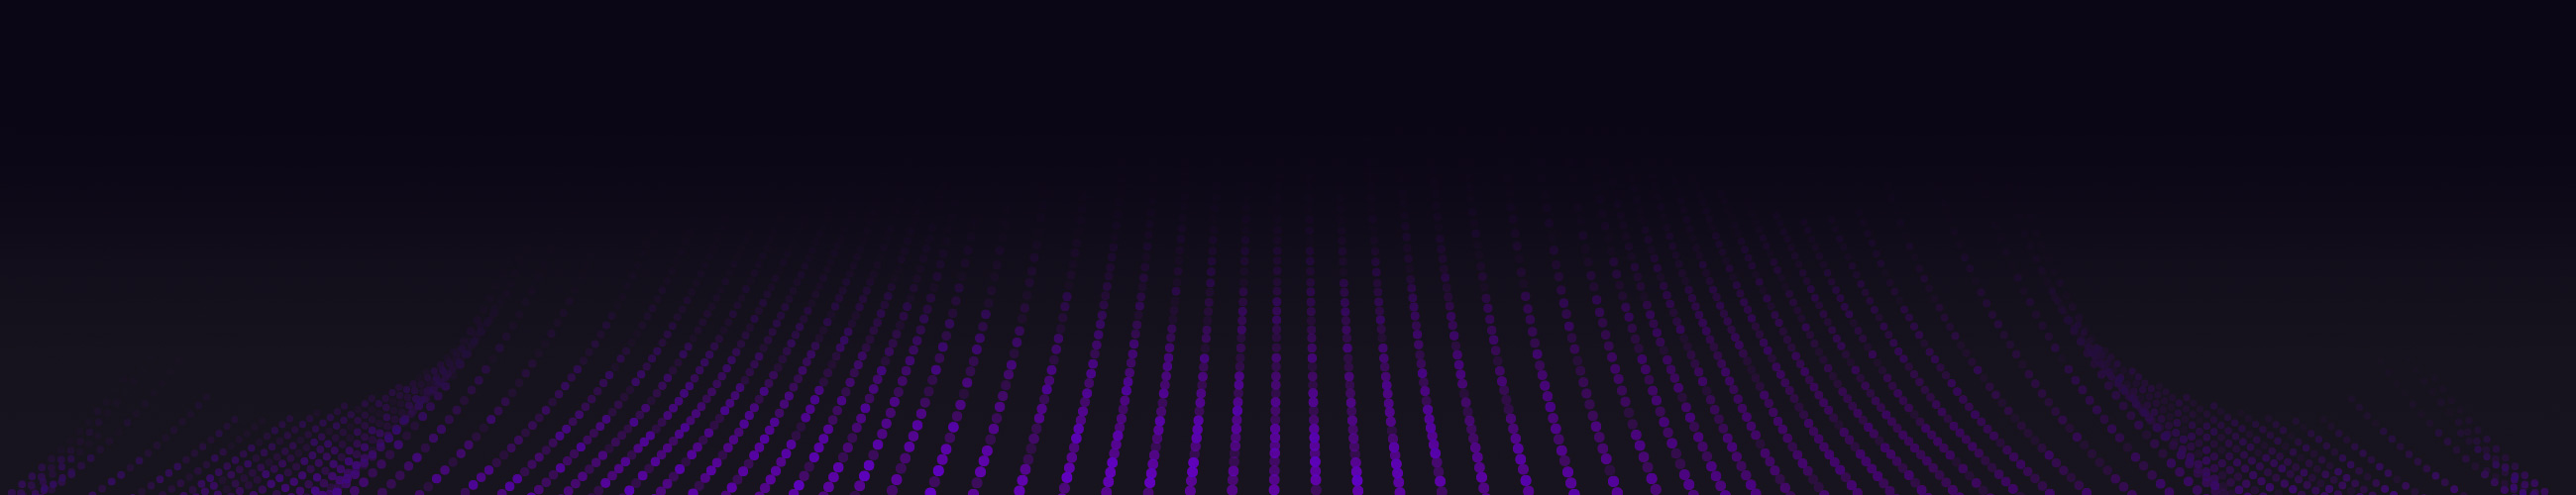 Dark Background with purple wave lines